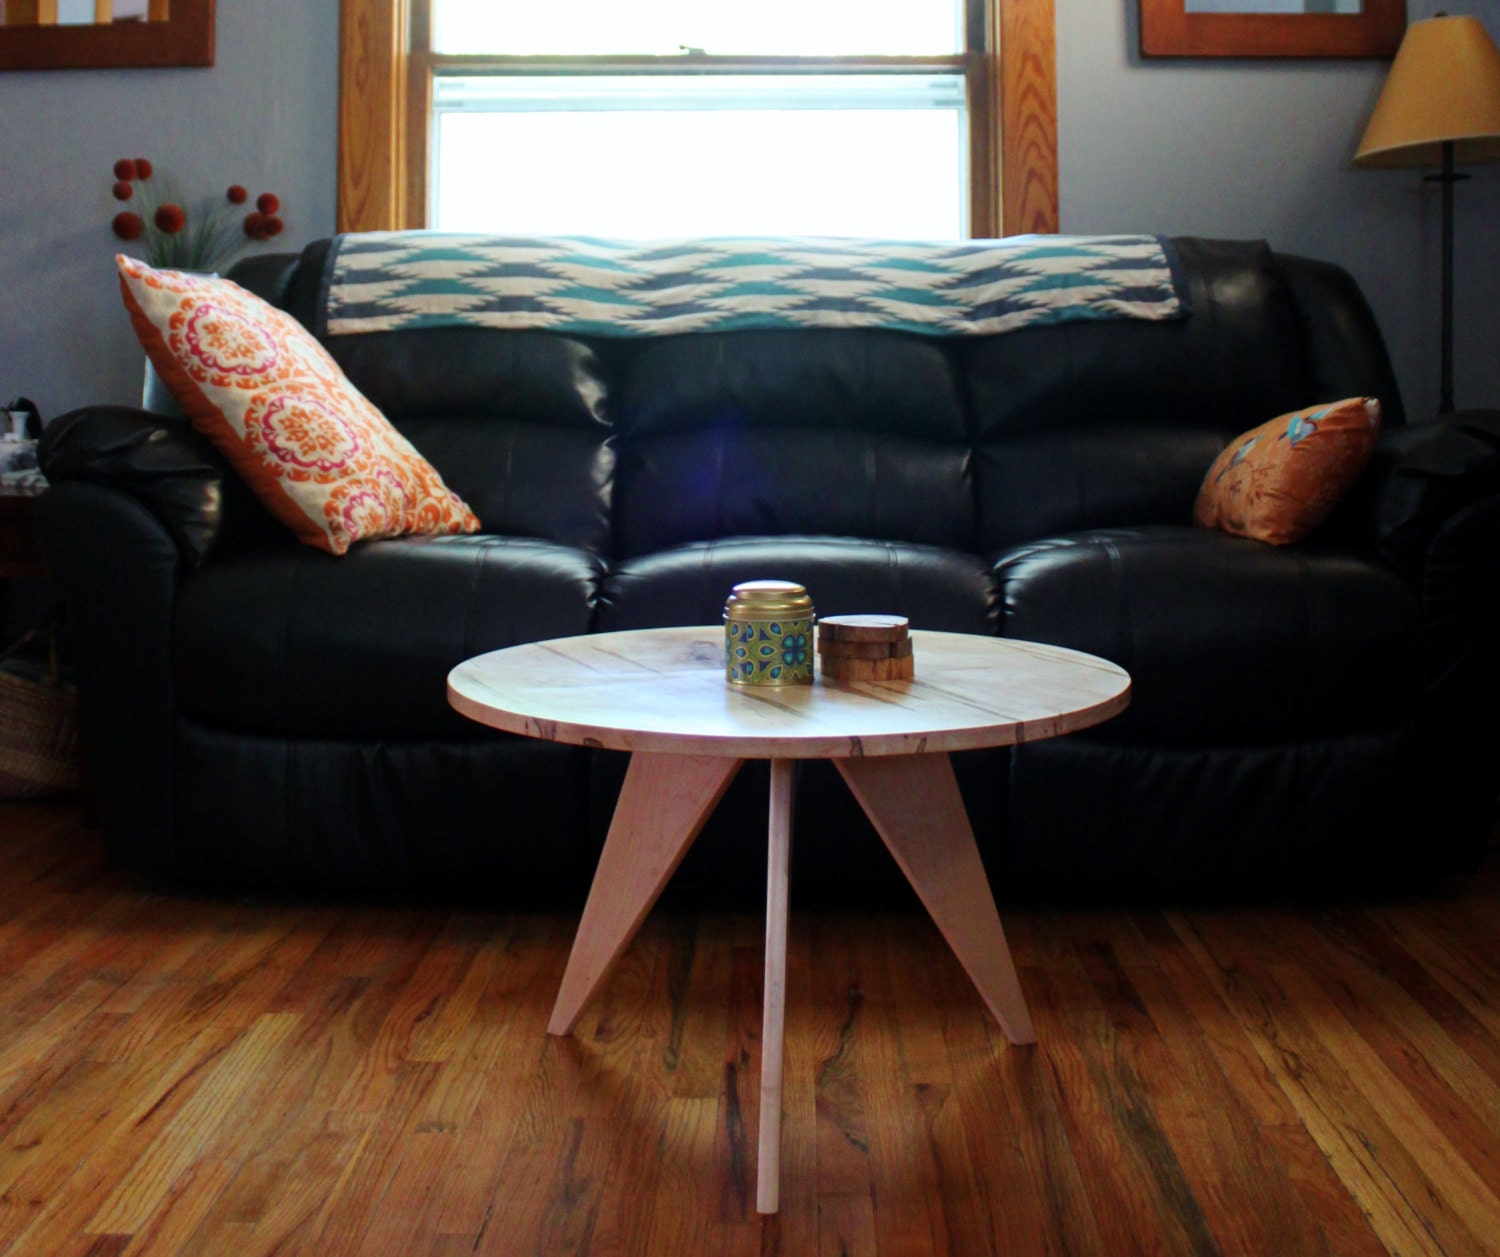 Etsy Wood Oval Coffee Table: Items Similar To Round Maple Worm Wood Coffee Table On Etsy